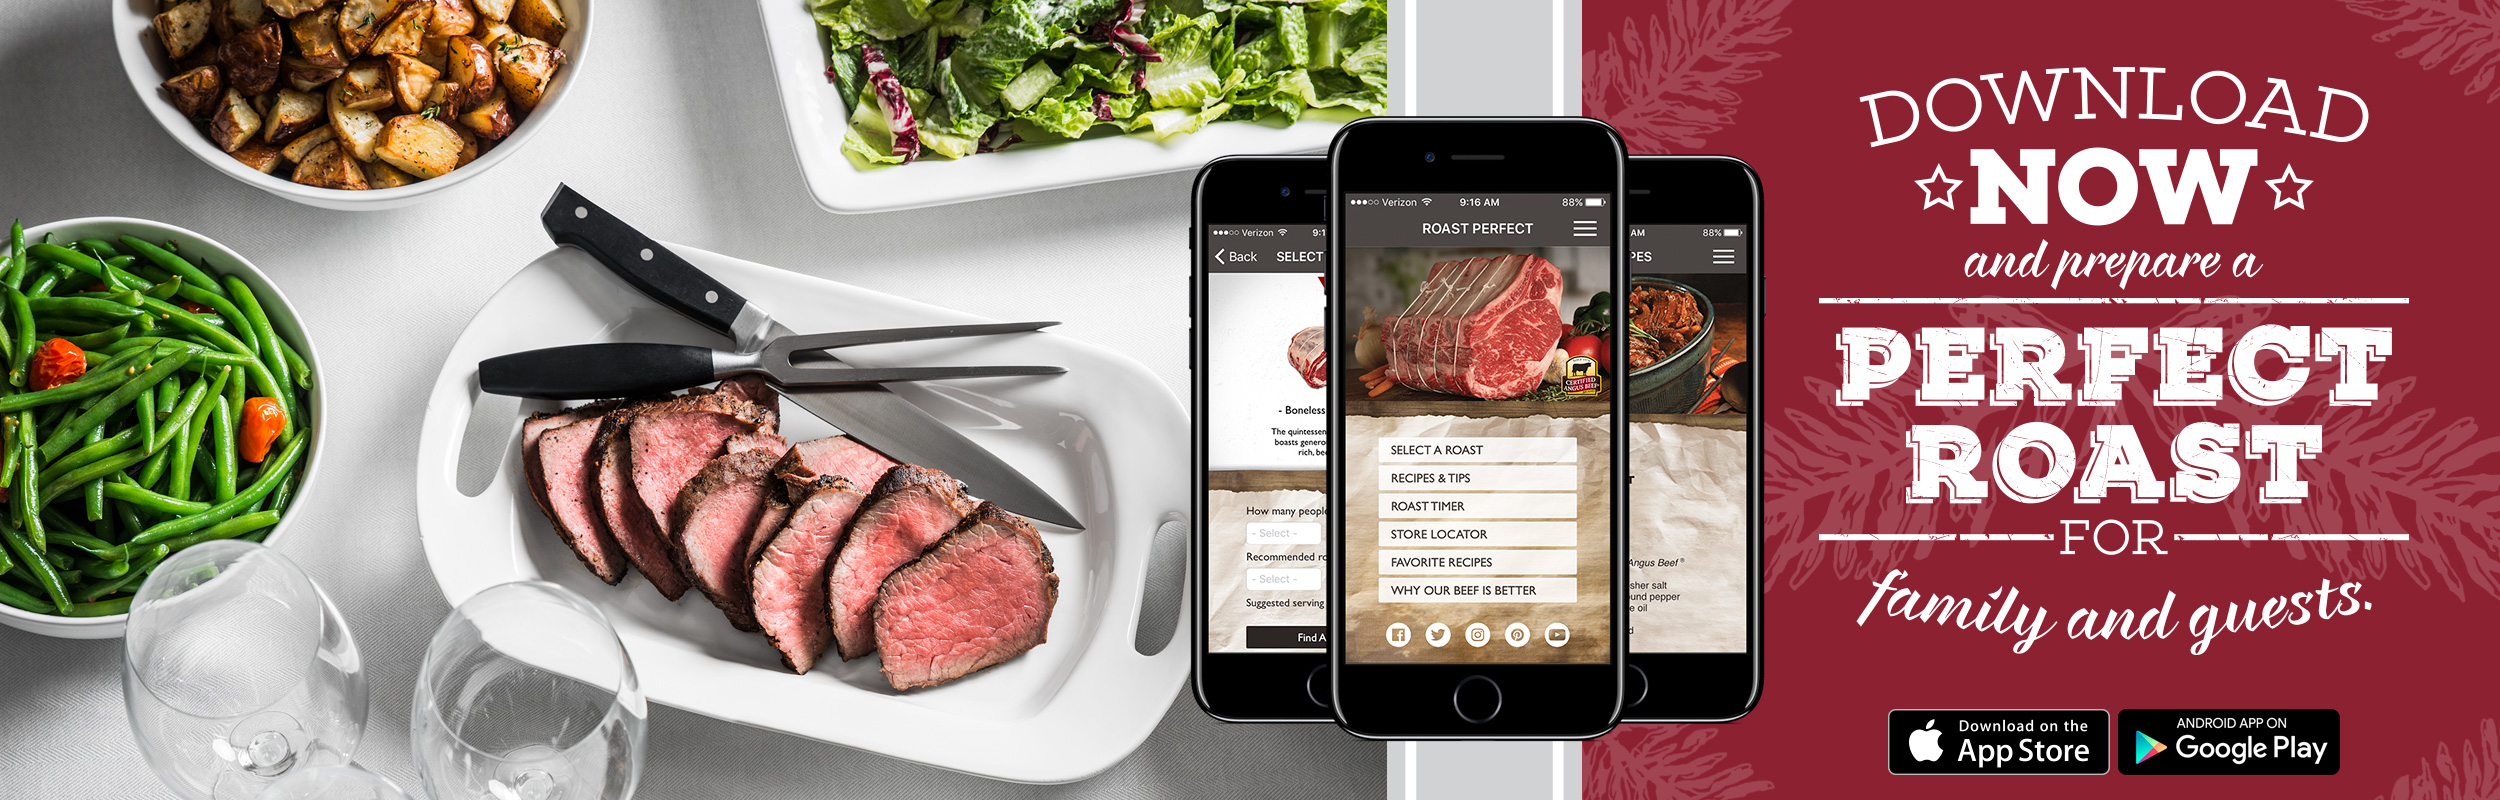 Roast Perfect App to make the perfect roast for family and guests